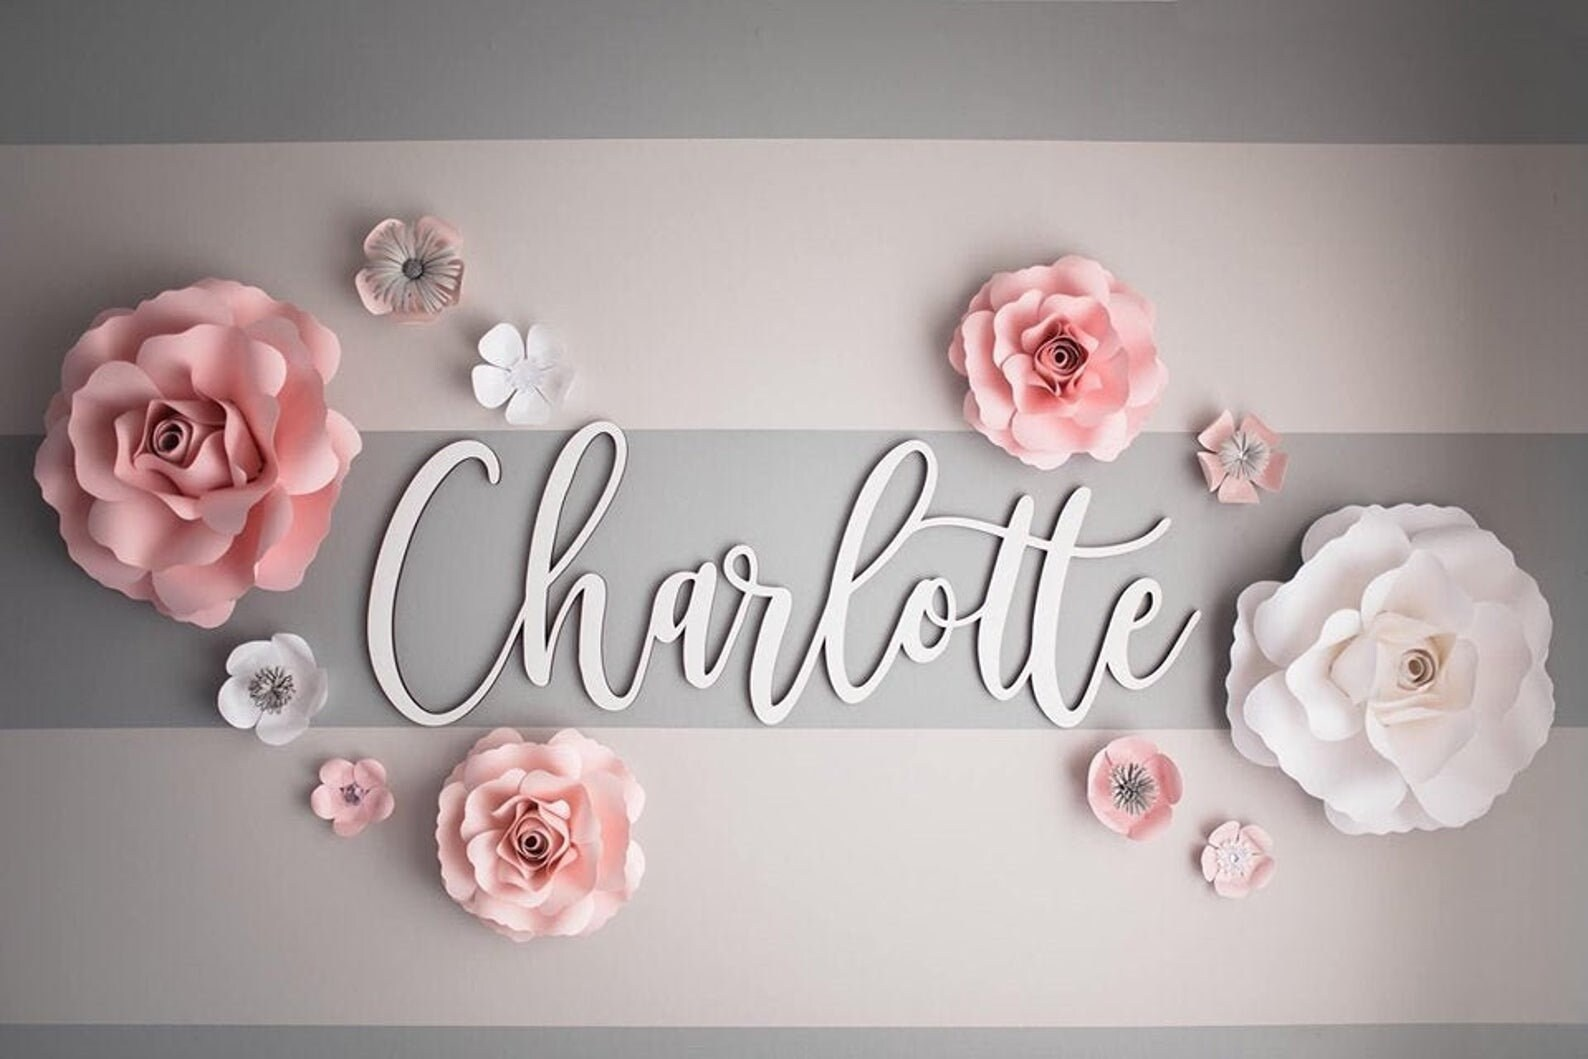 Baby name sign cutout  Name cut out  Personalized name sign image 6